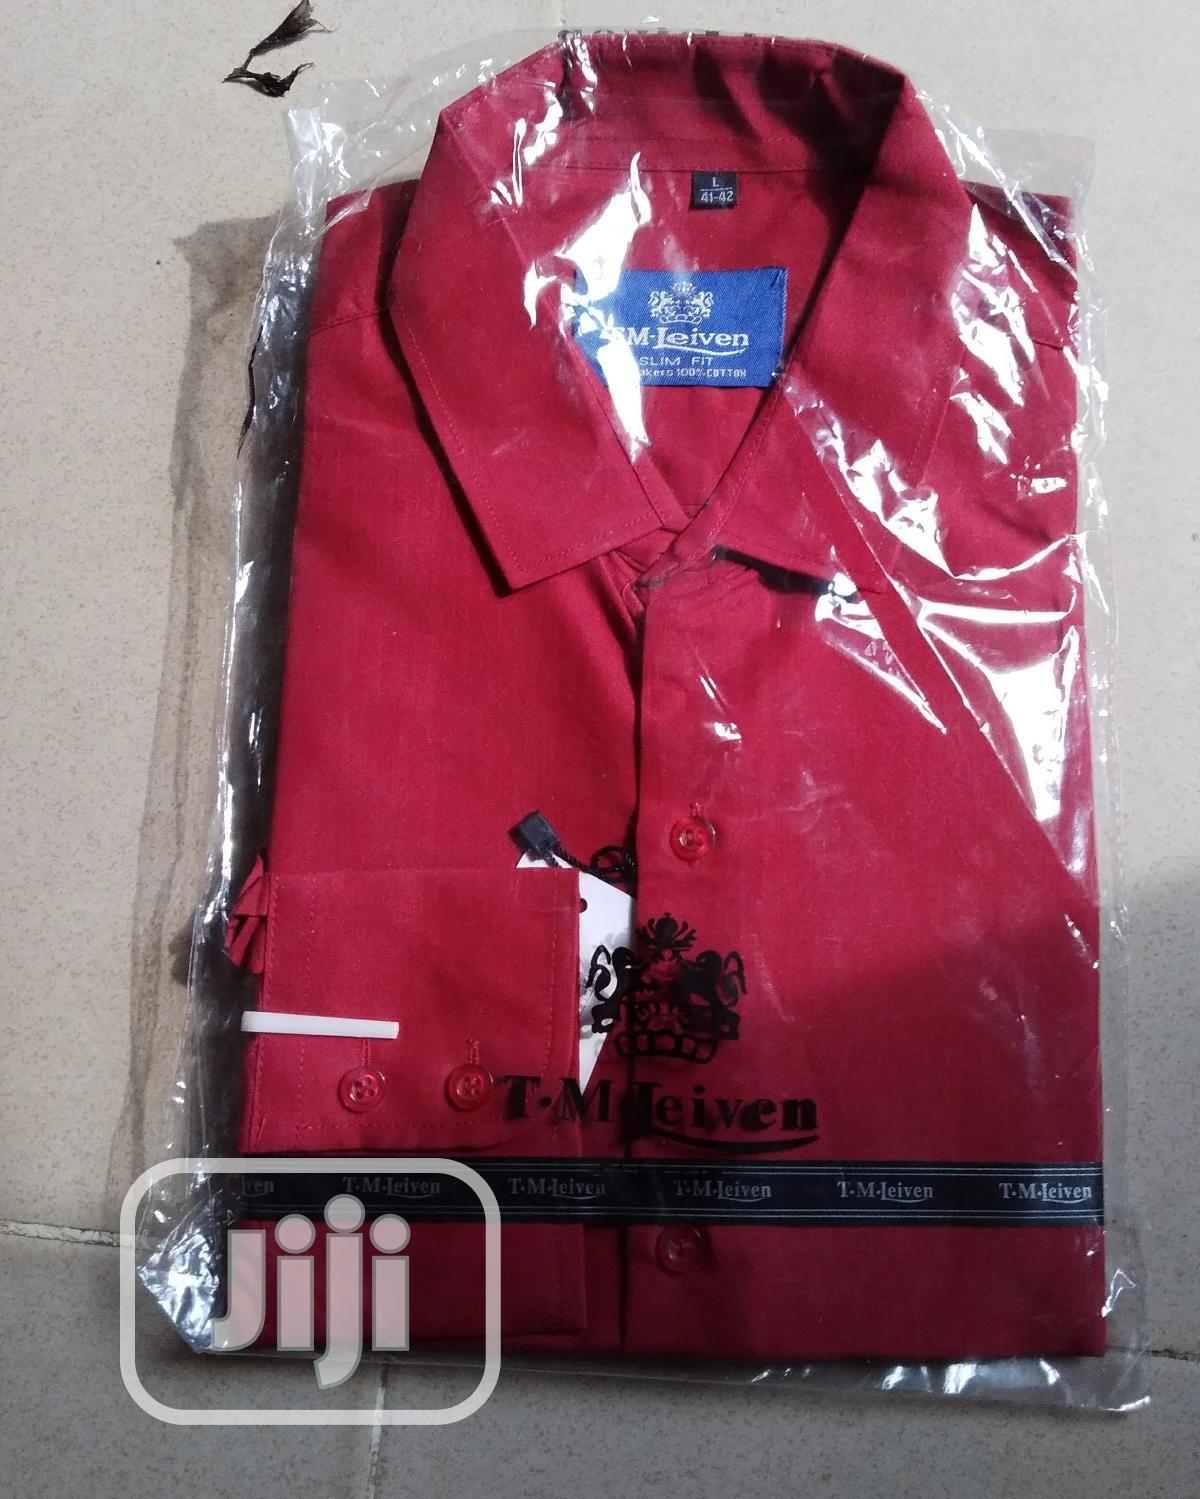 T.M Leiven Slim Fit Shirt